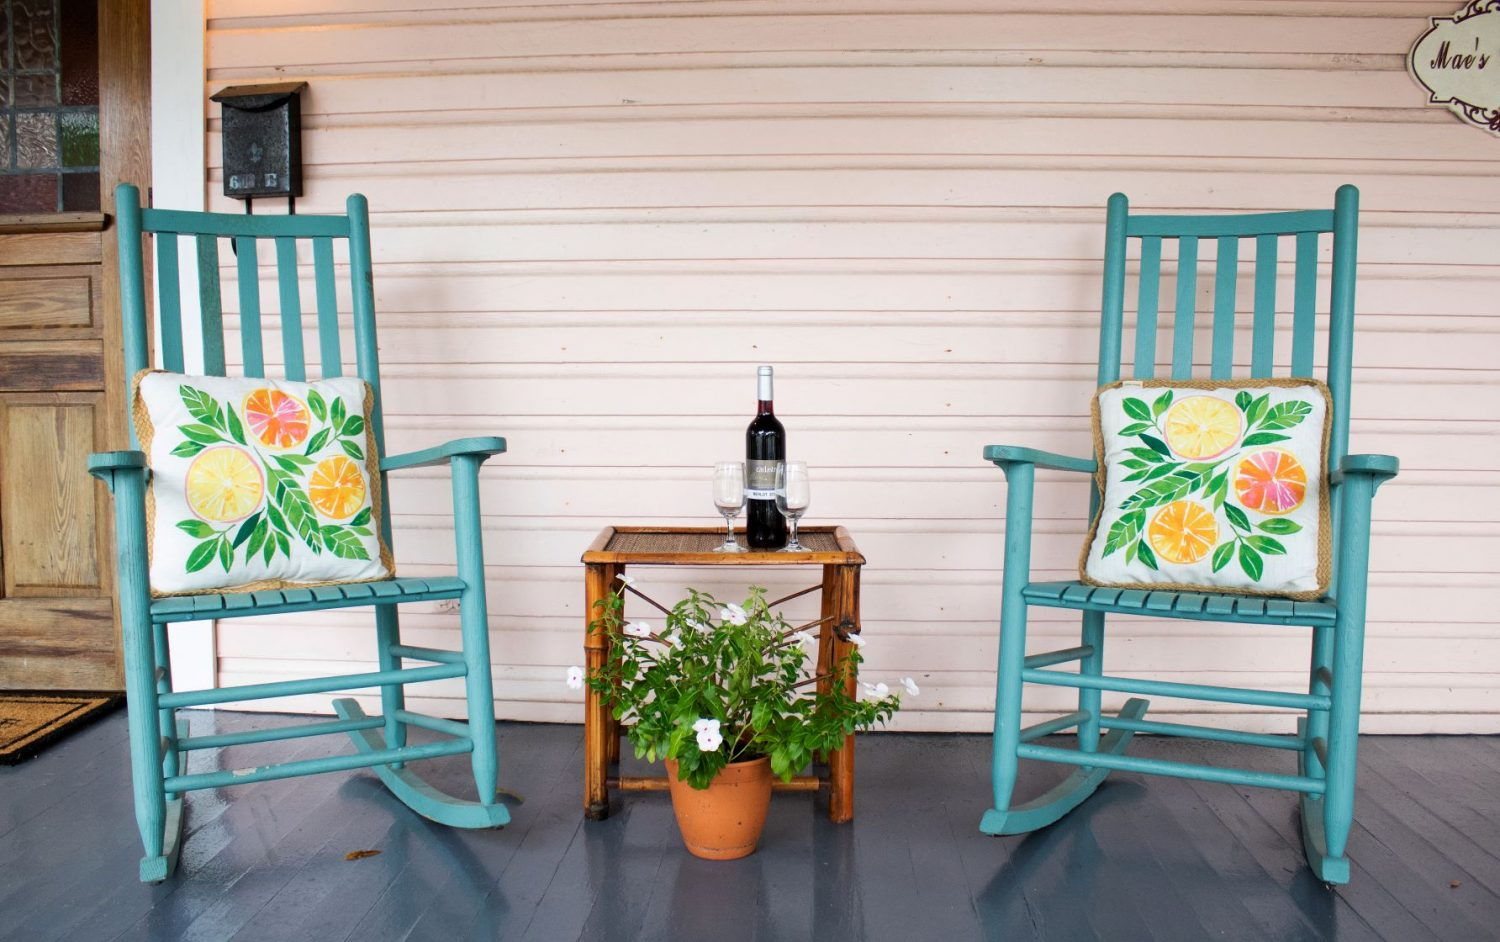 Patio Chairs with floral pillows and a bottle of beer in between